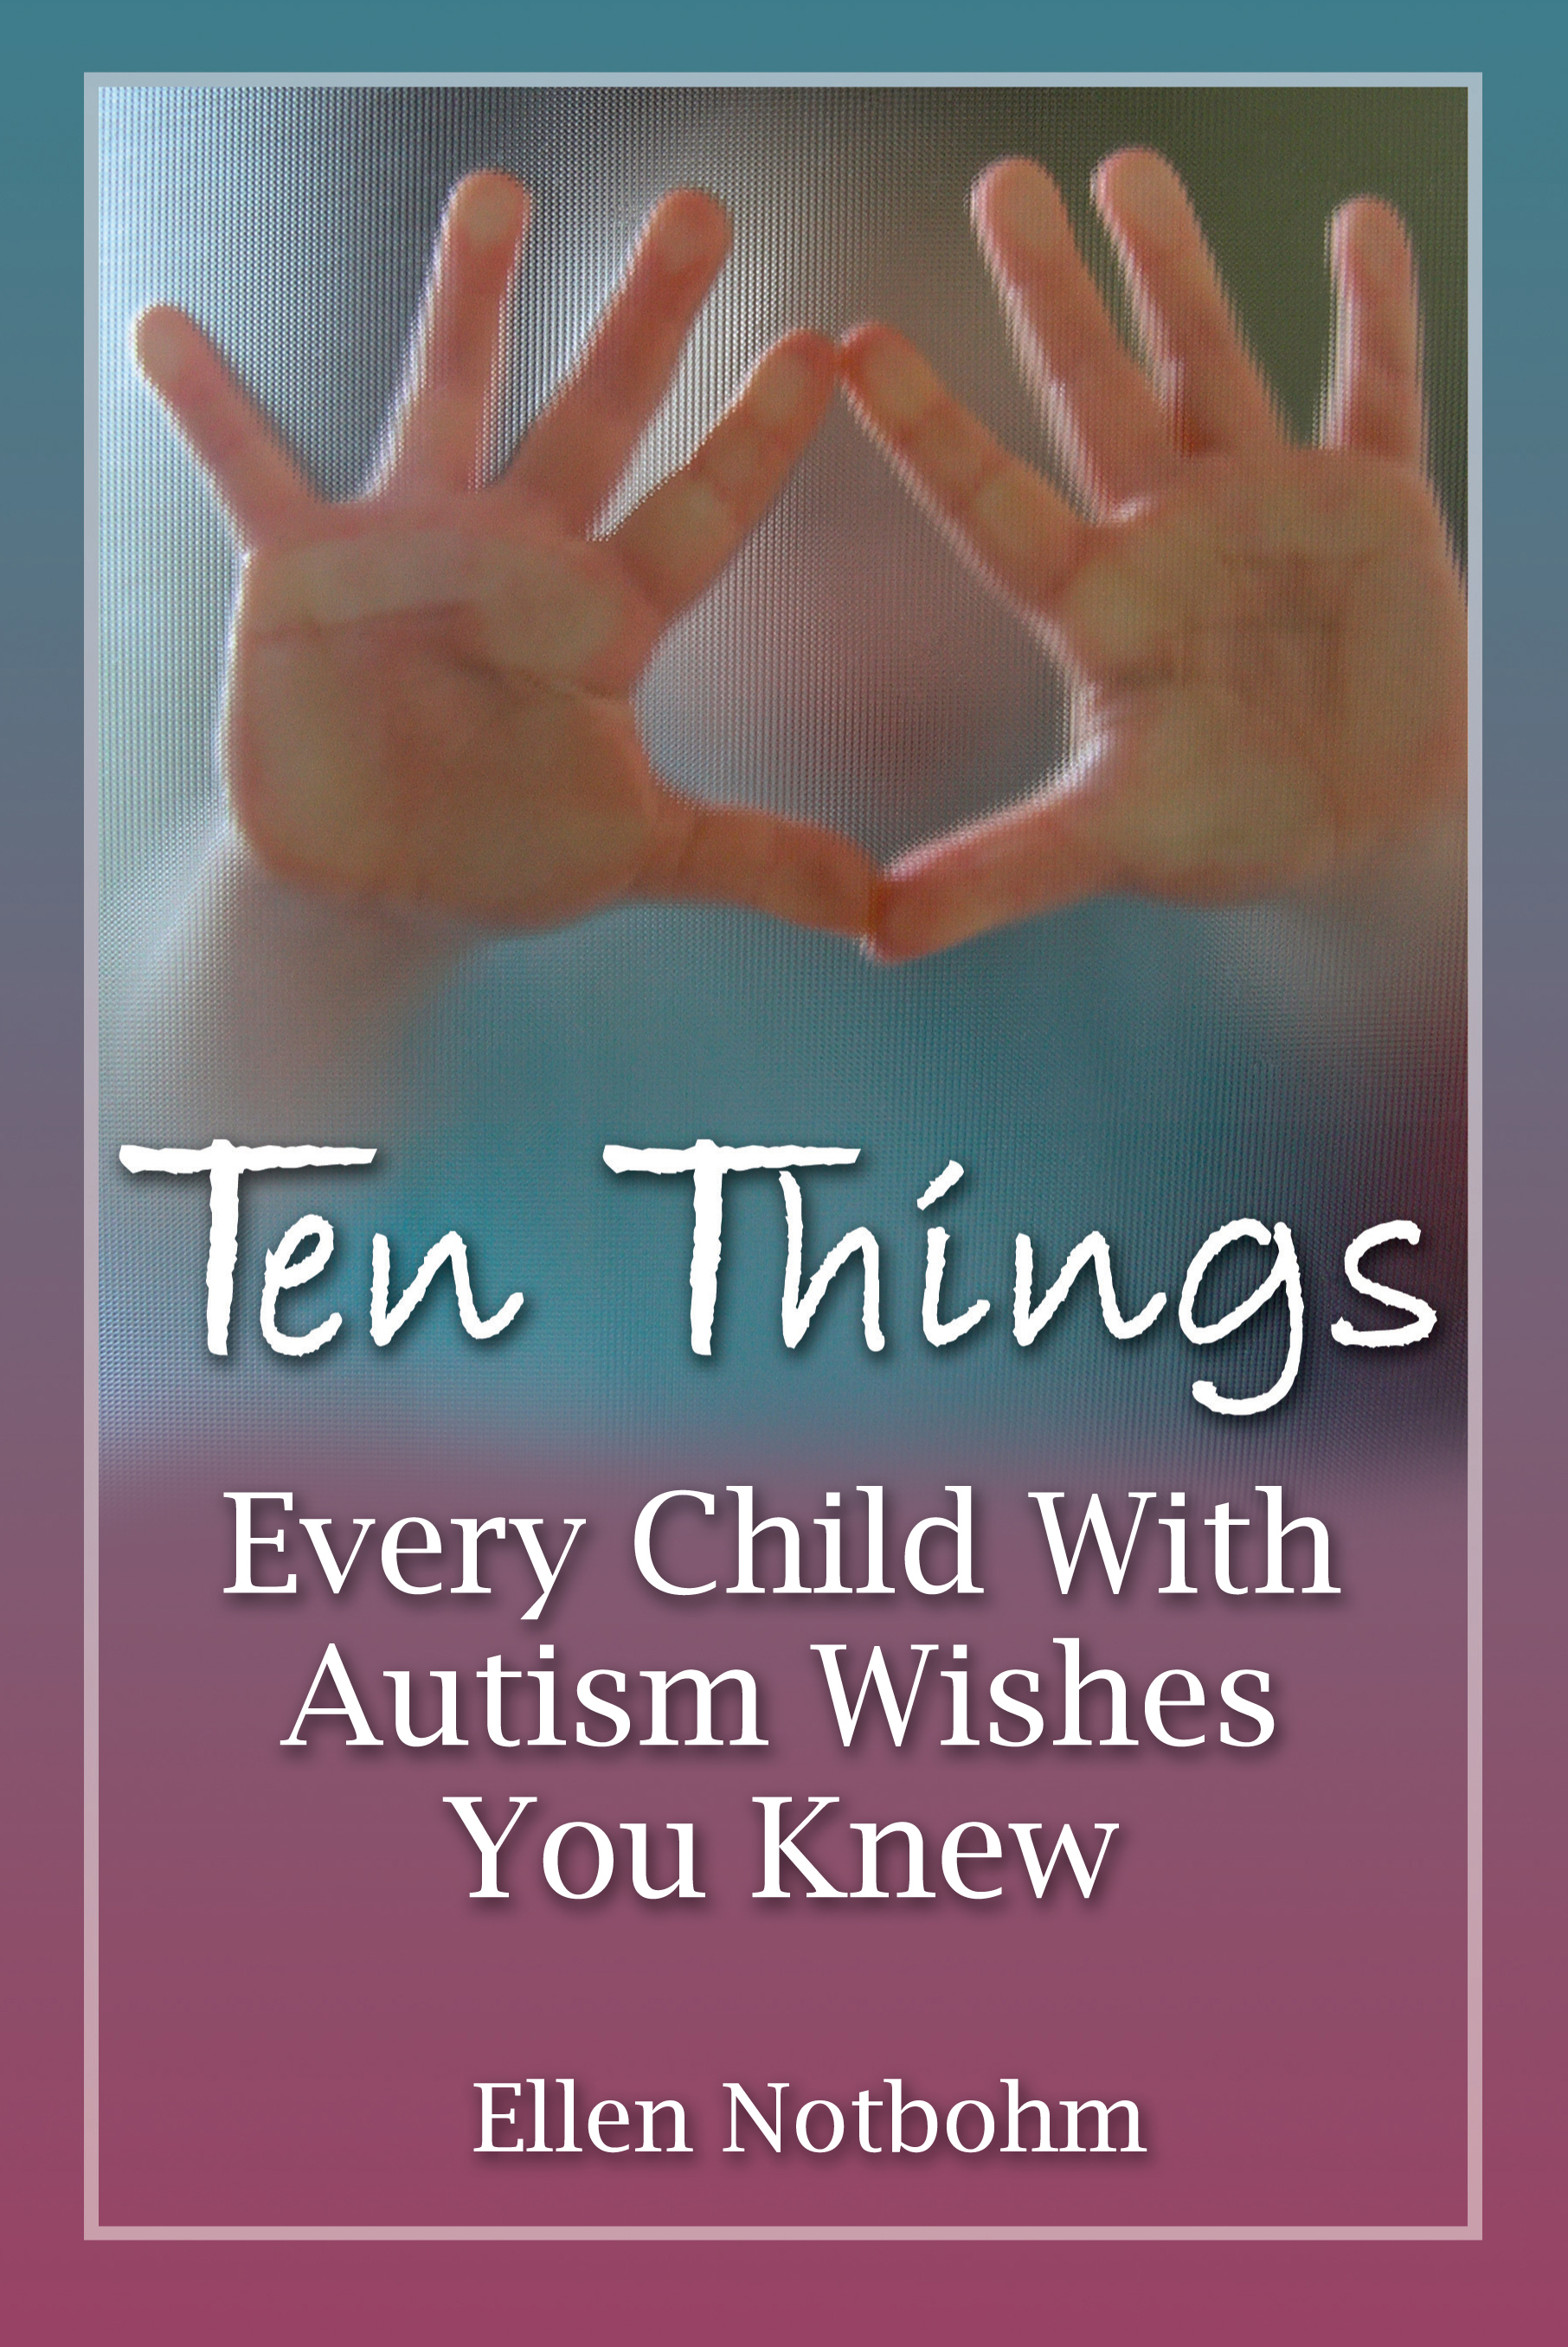 Ten-Things-Every-Child-book-cover1